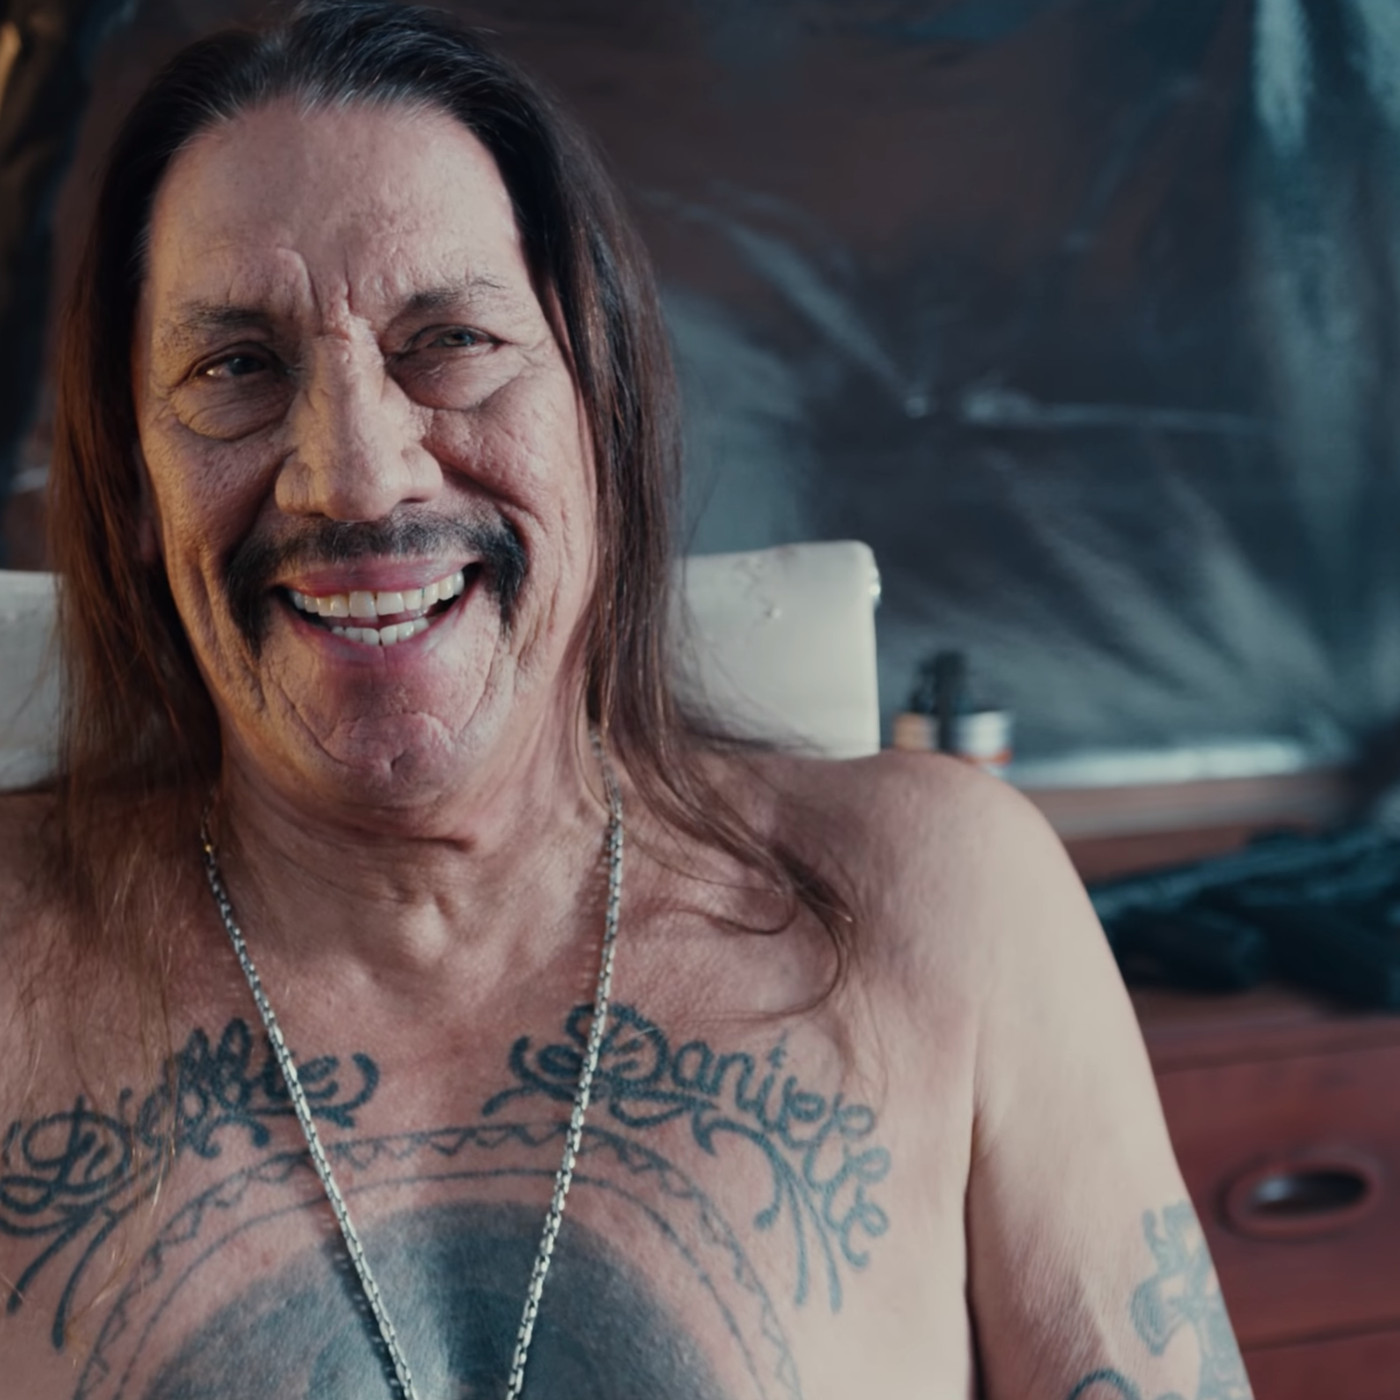 Danny trejo csgo betting william hill greyhound derby 2021 betting